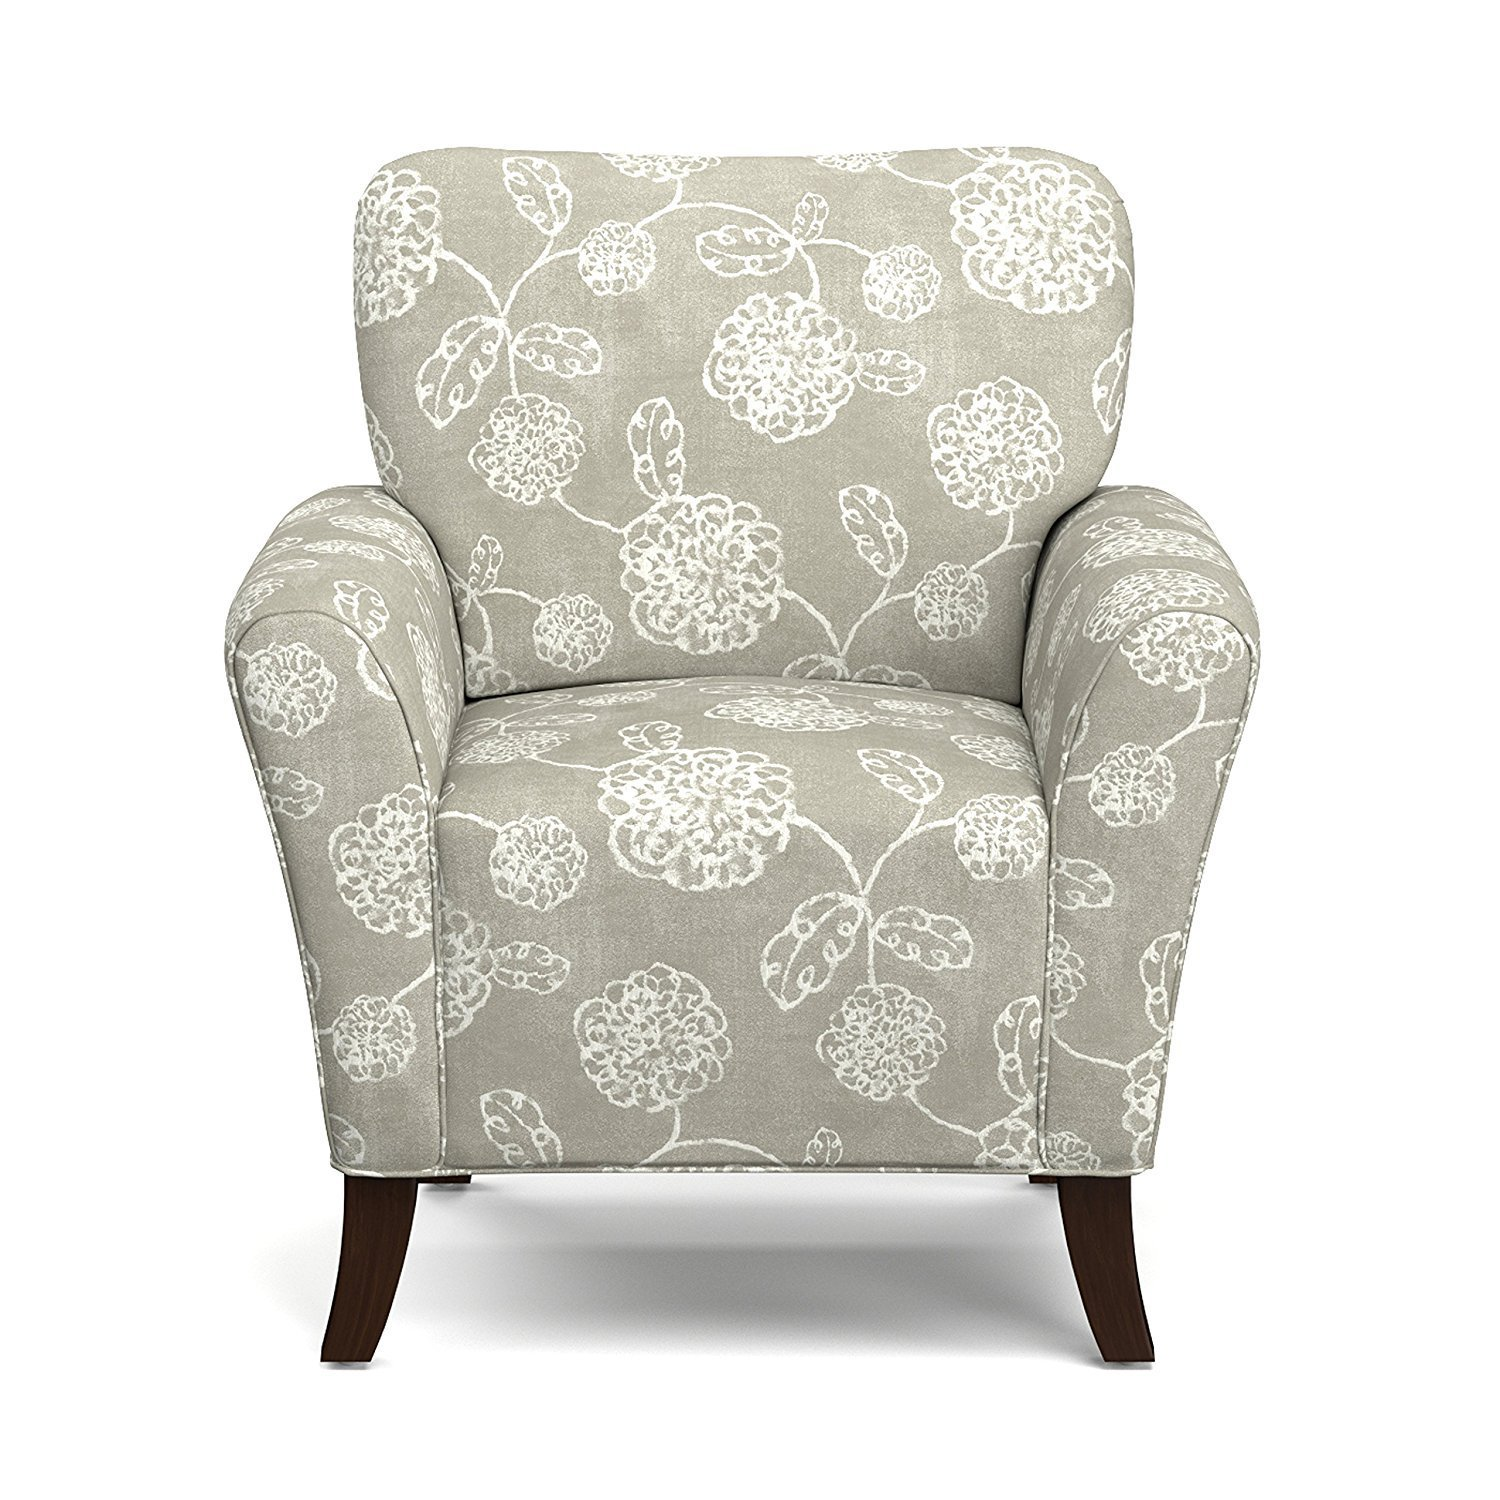 Upholstered Living Room Chairs  Home Furniture Design